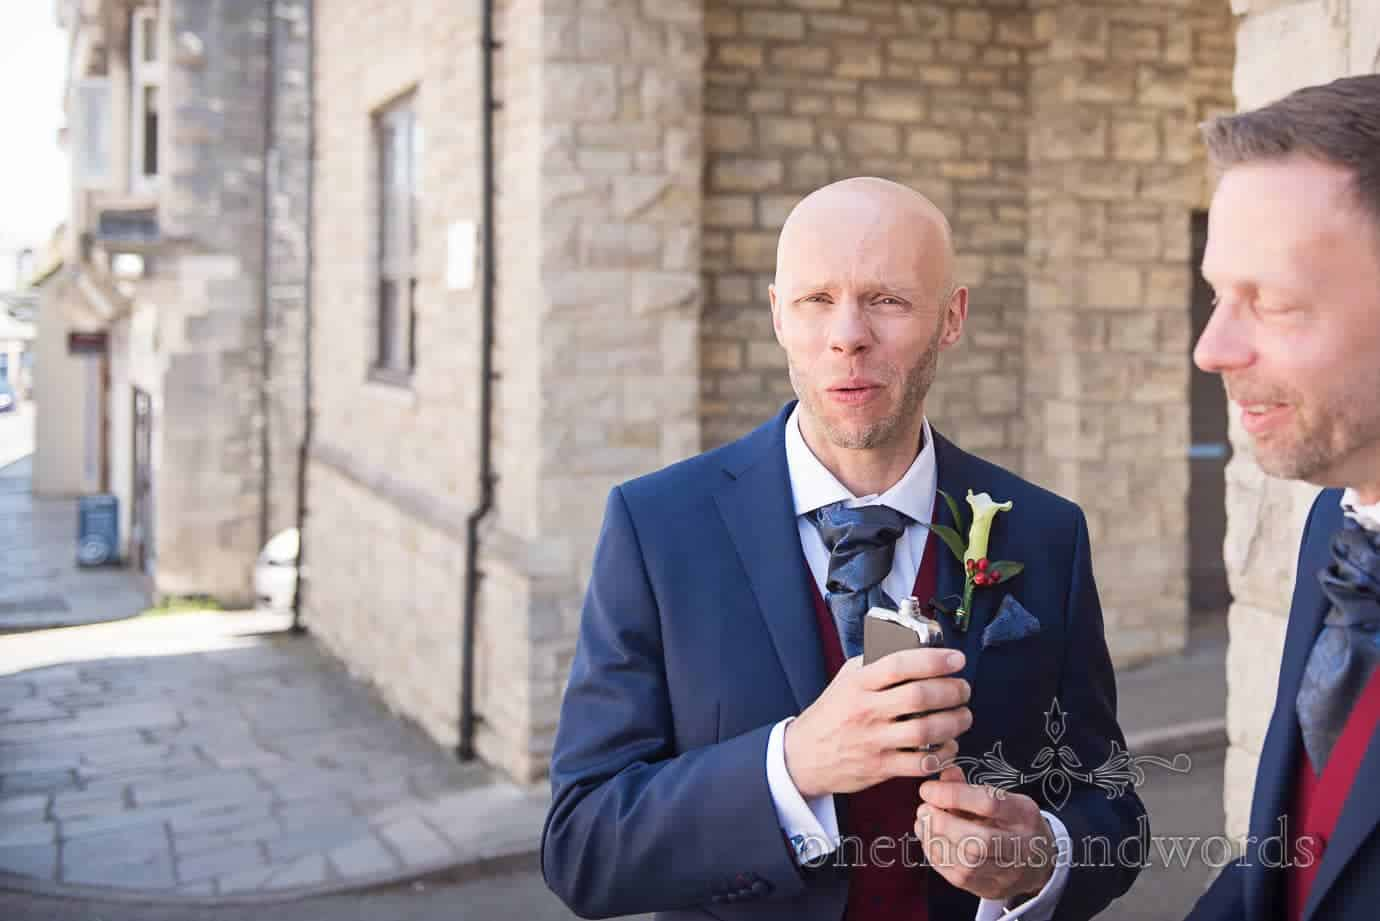 Grooms reaction to hip flask whiskey on wedding morning in Swanage, Dorset